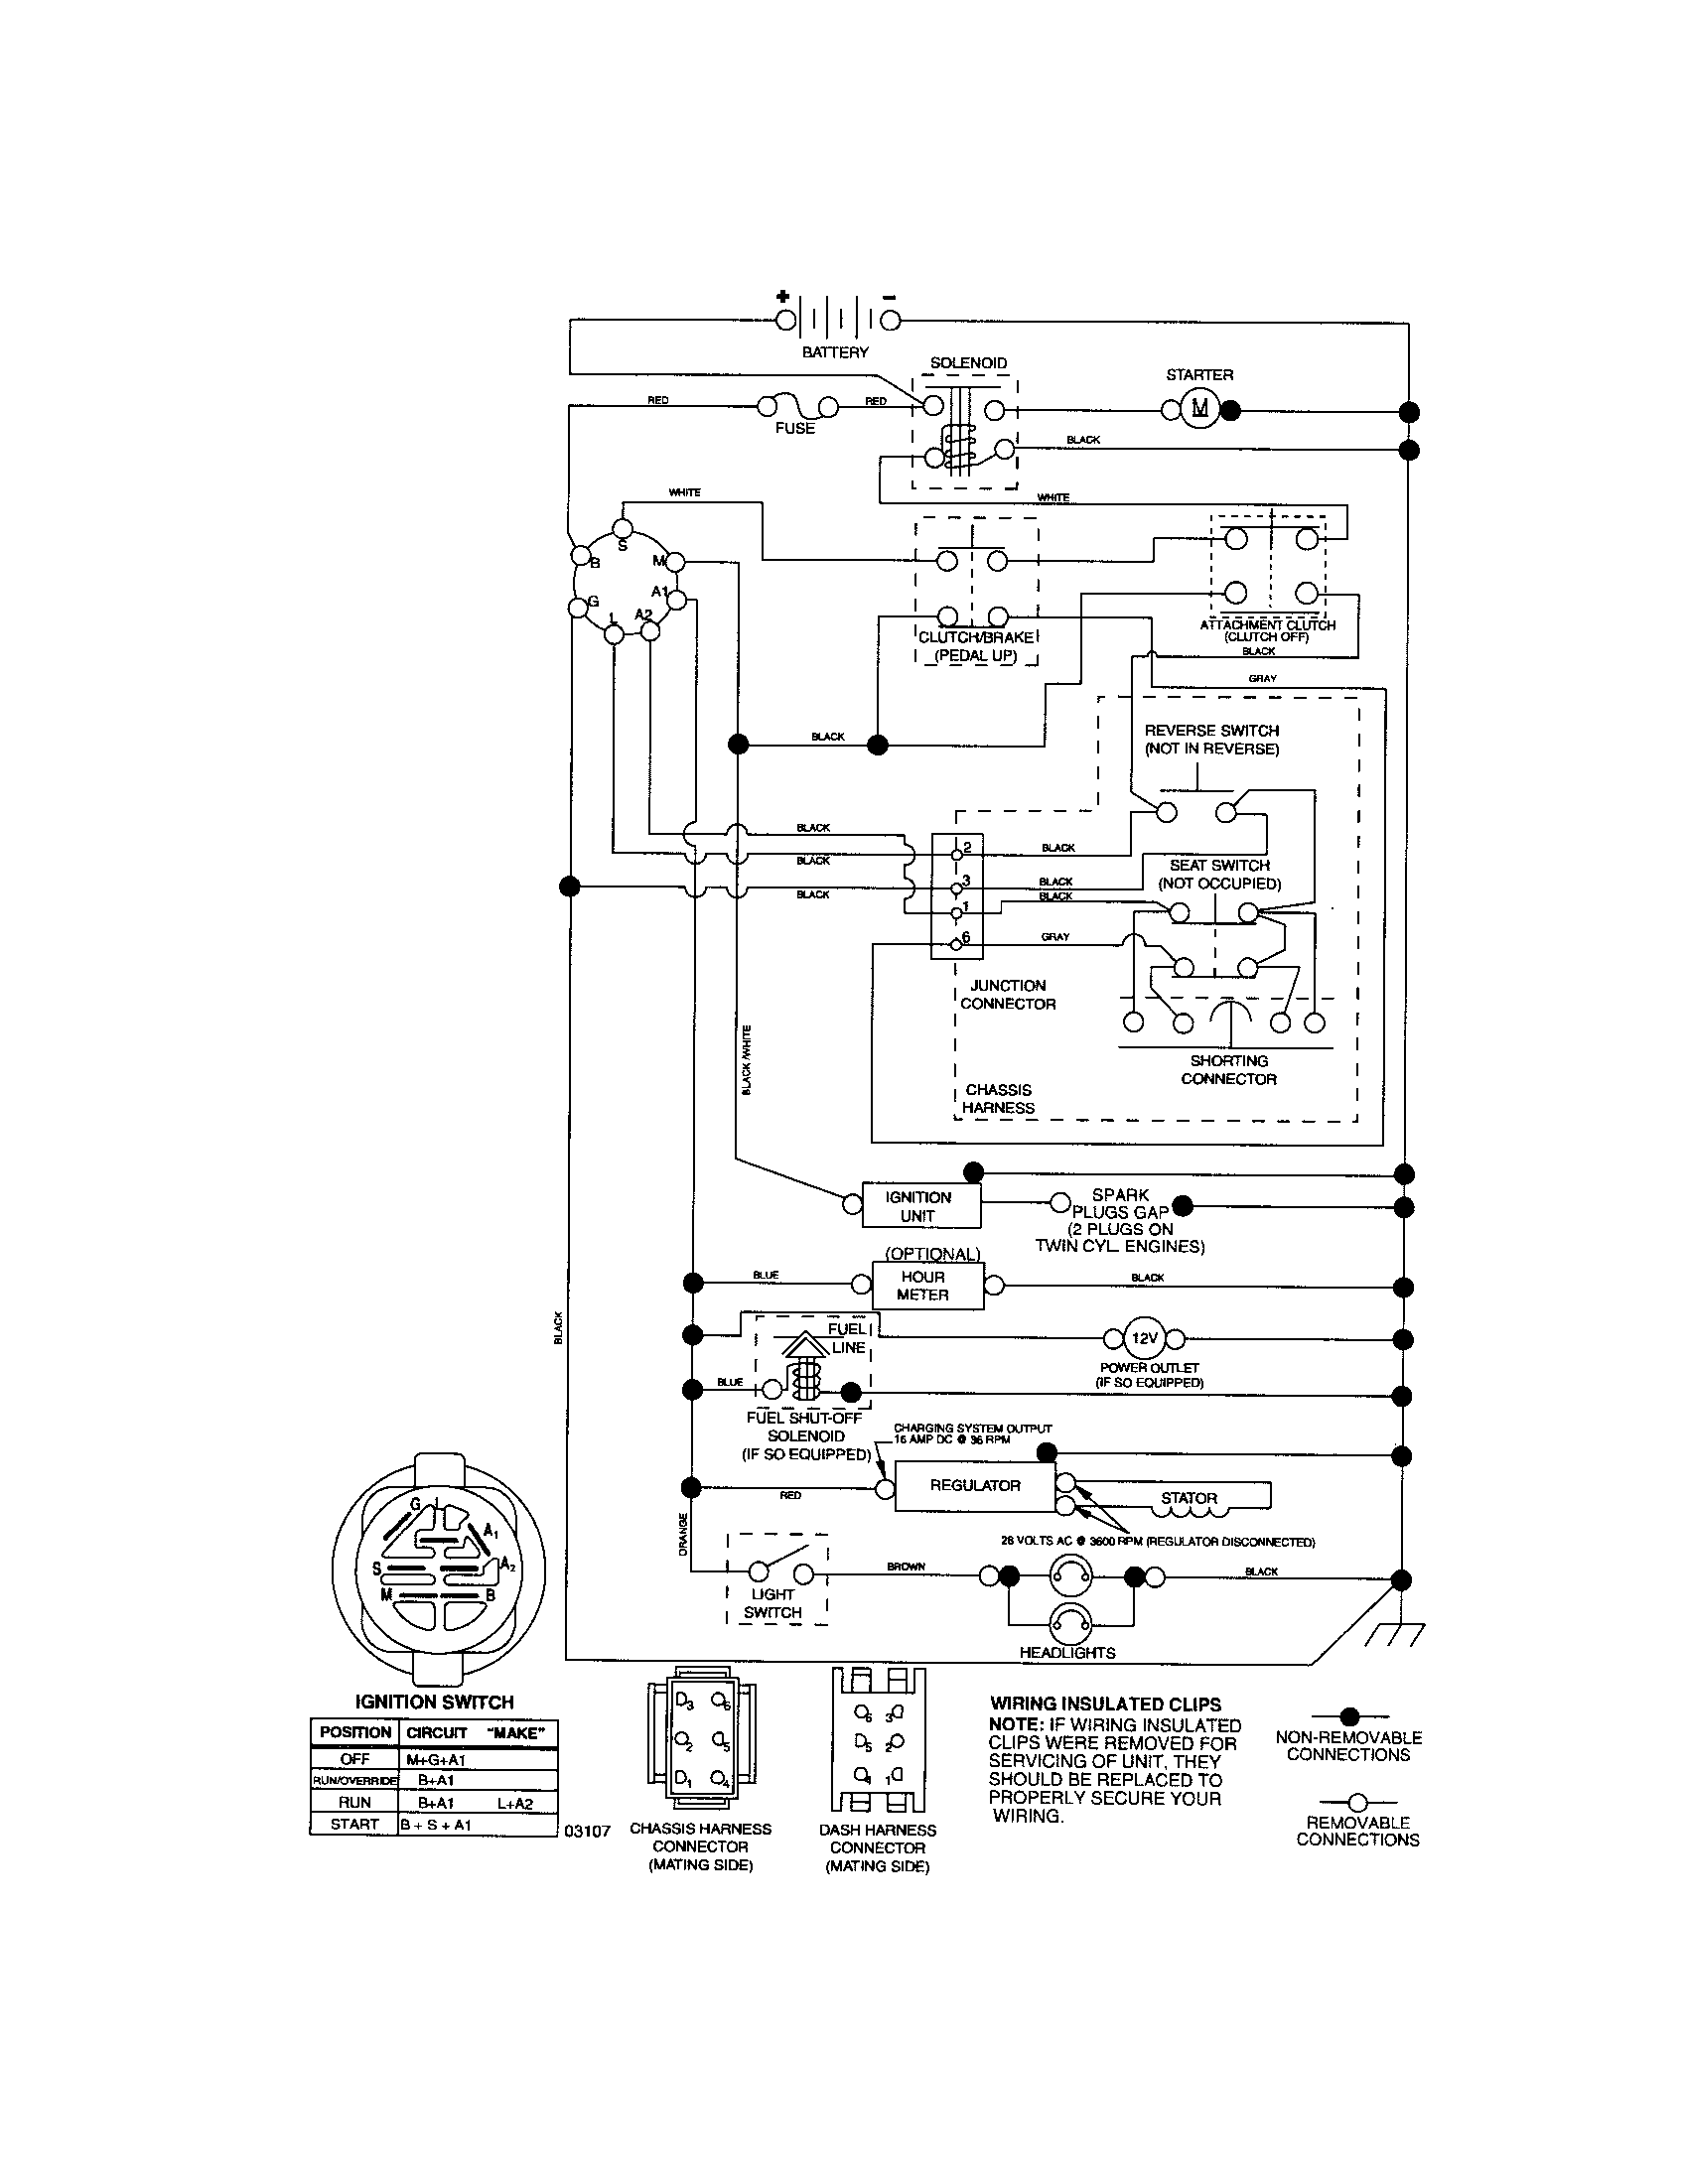 6af5f1447fd13c8443376822ddc1e105 craftsman riding mower electrical diagram wiring diagram john deere 100 series wiring diagram at readyjetset.co